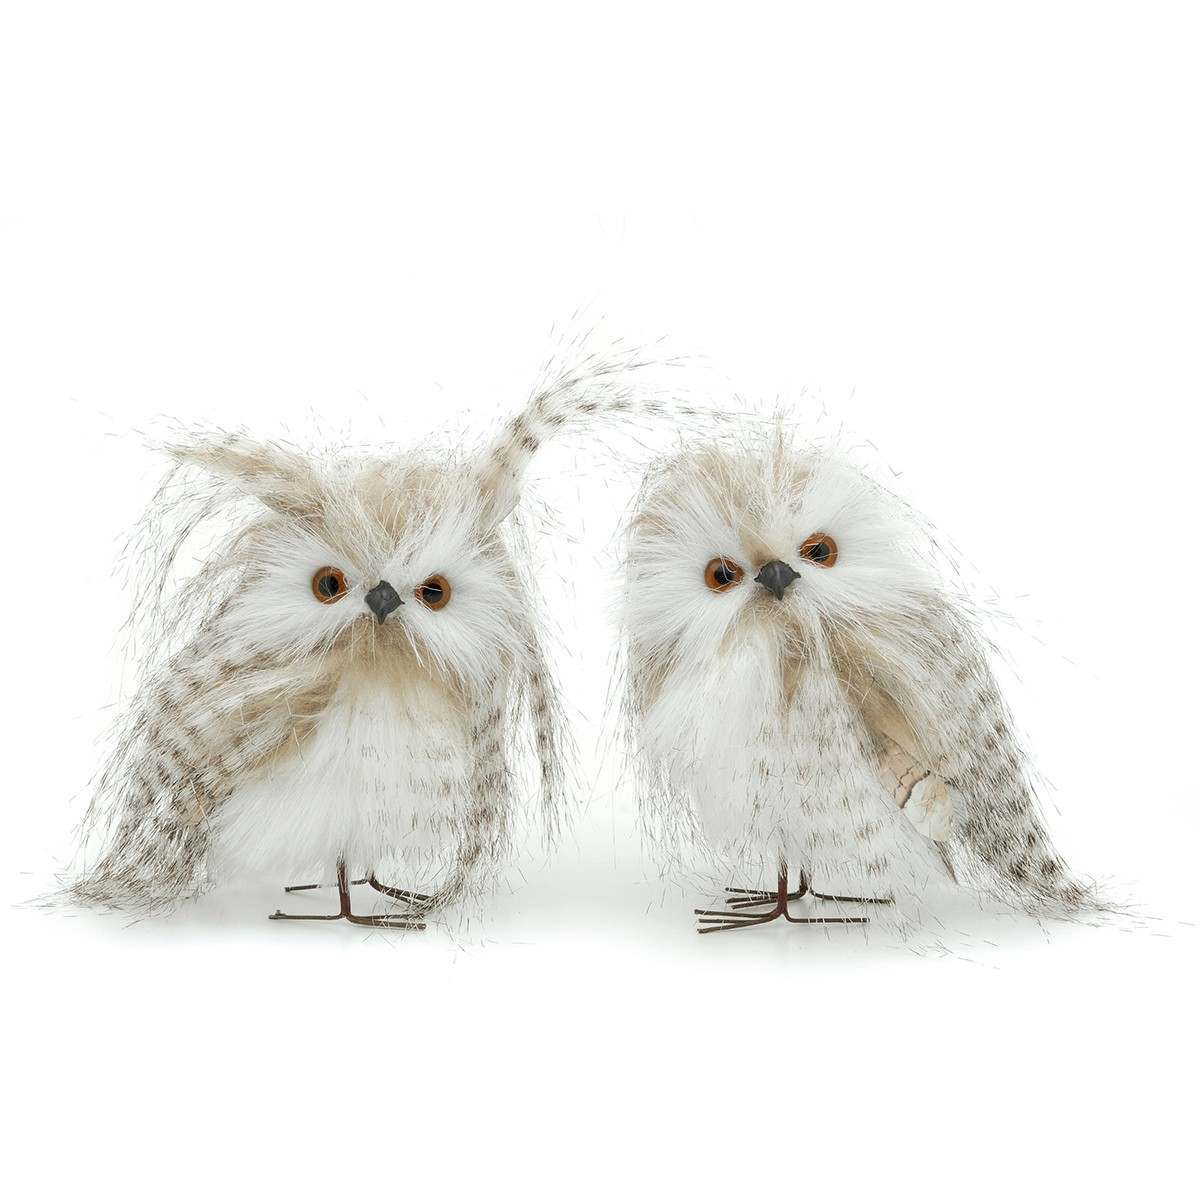 125cm Grey White Owls Tree Decorations 2 Asstd Designs